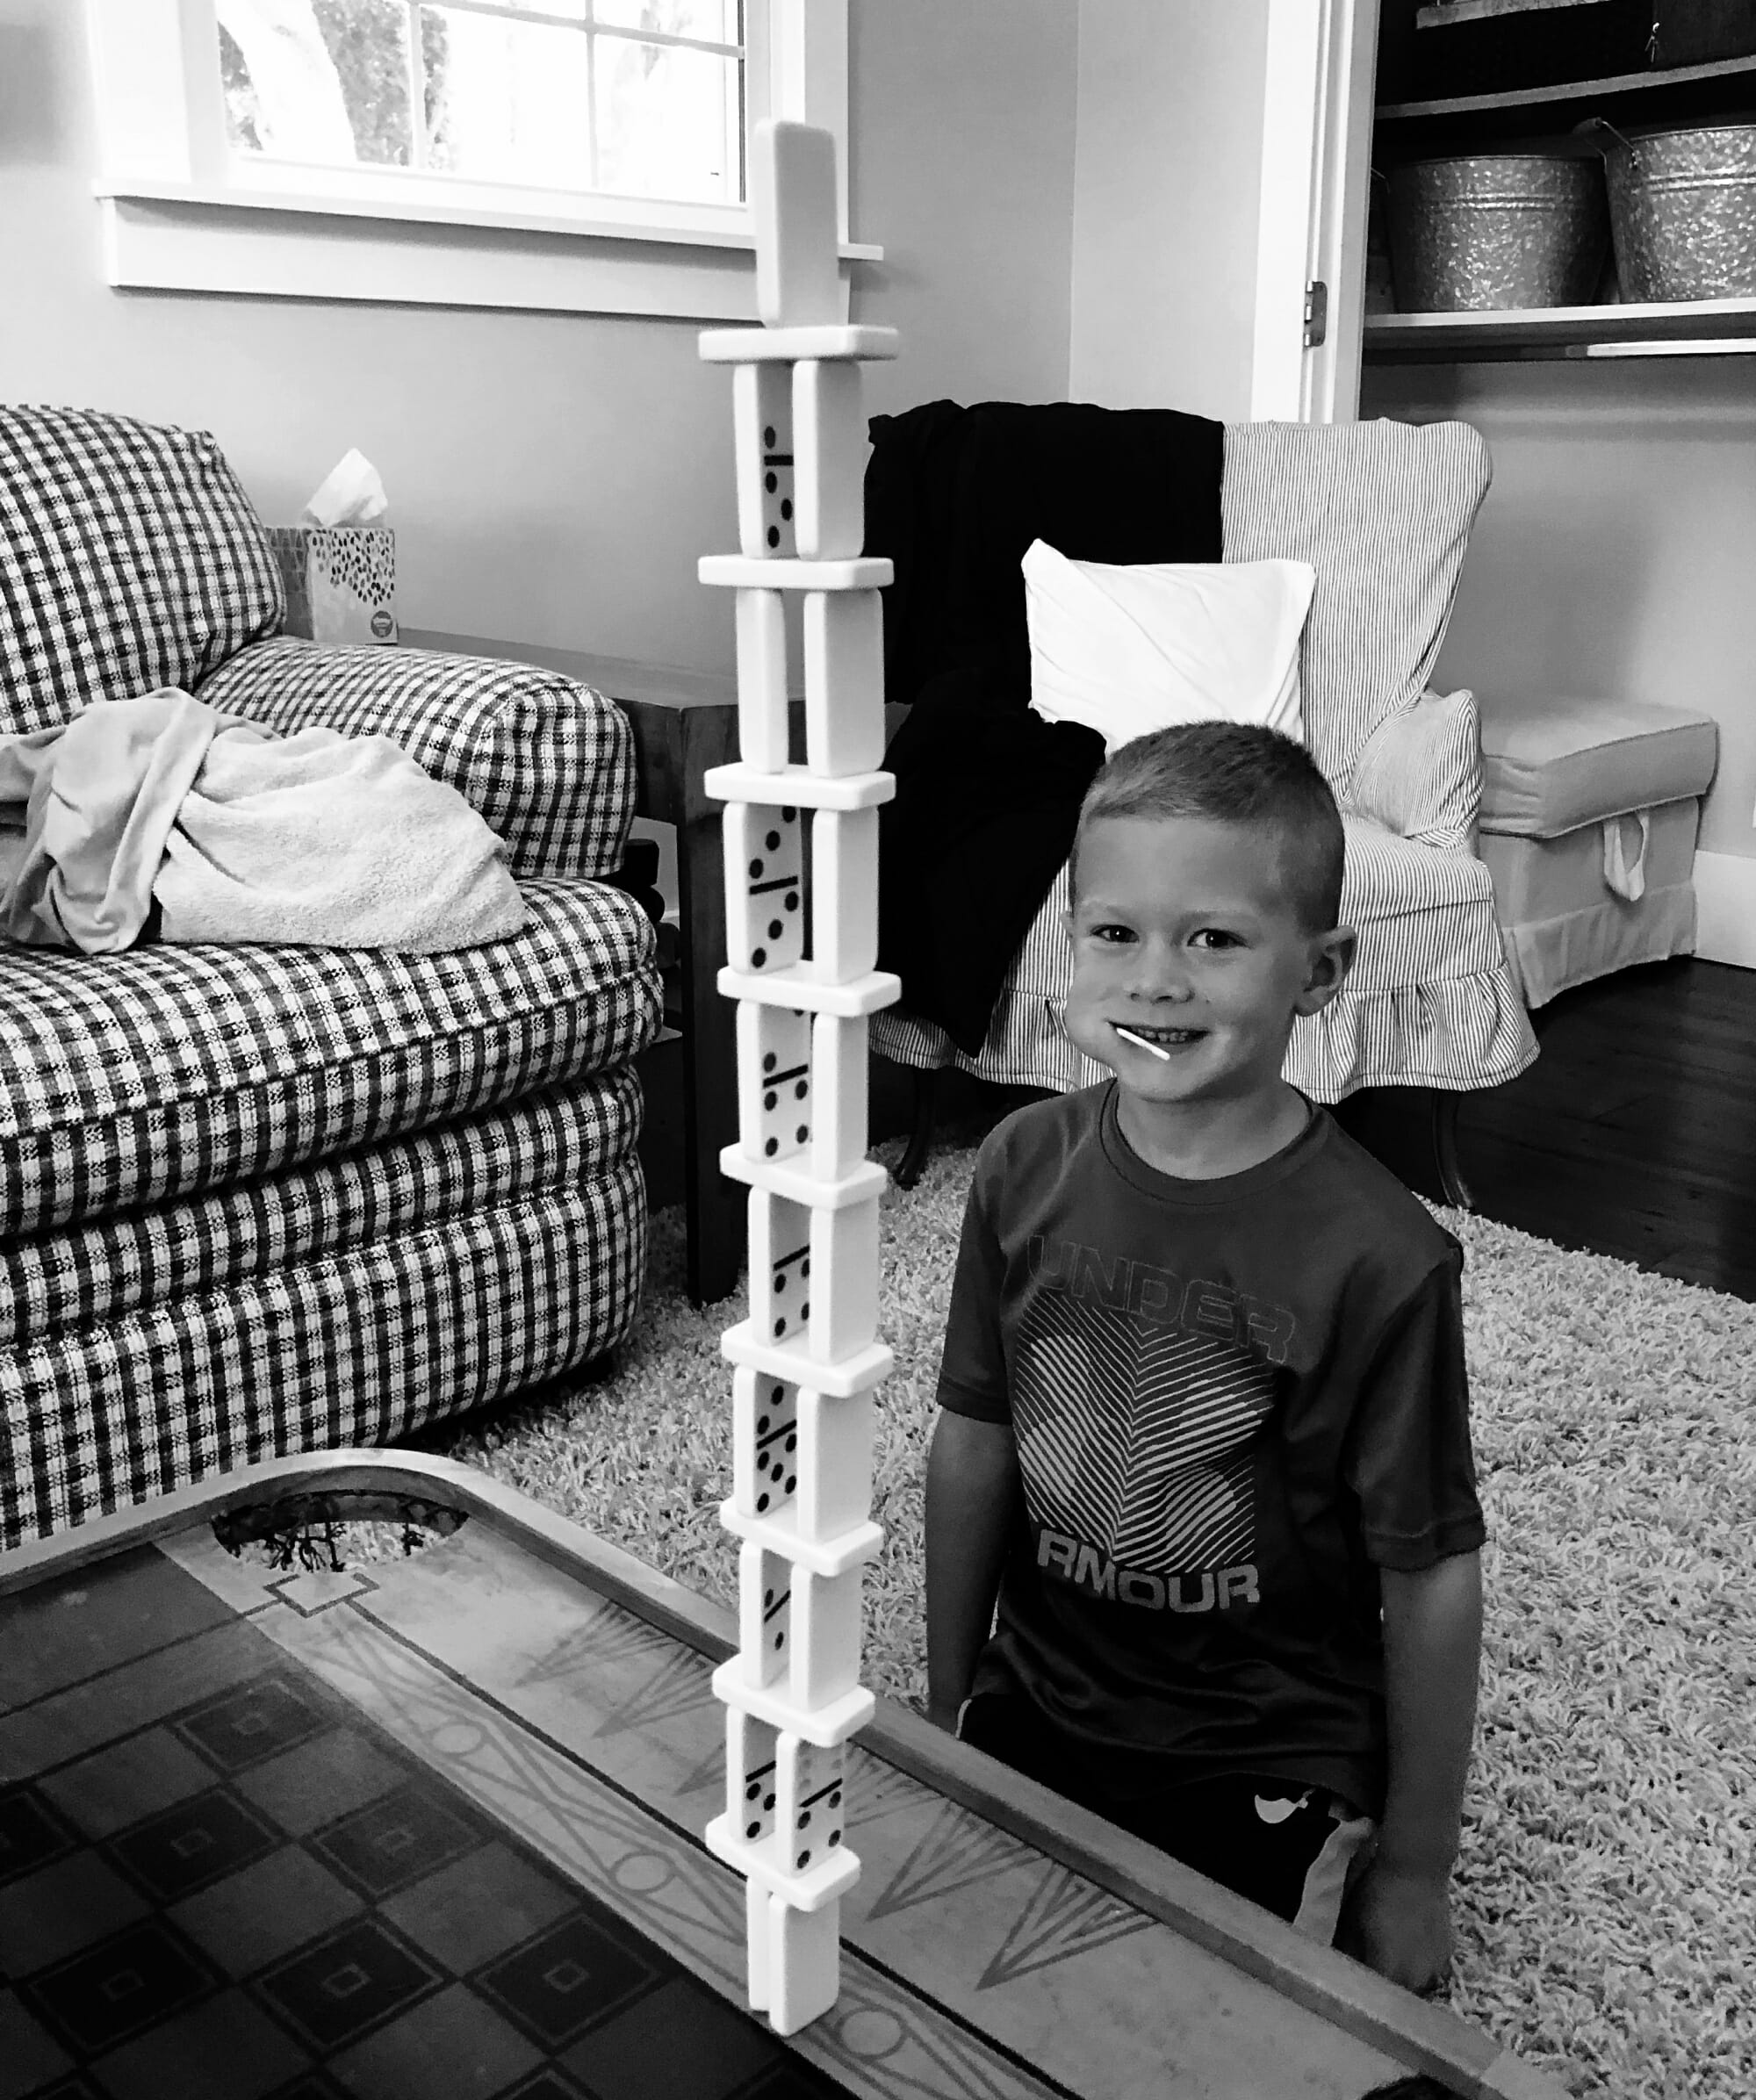 james domino tower